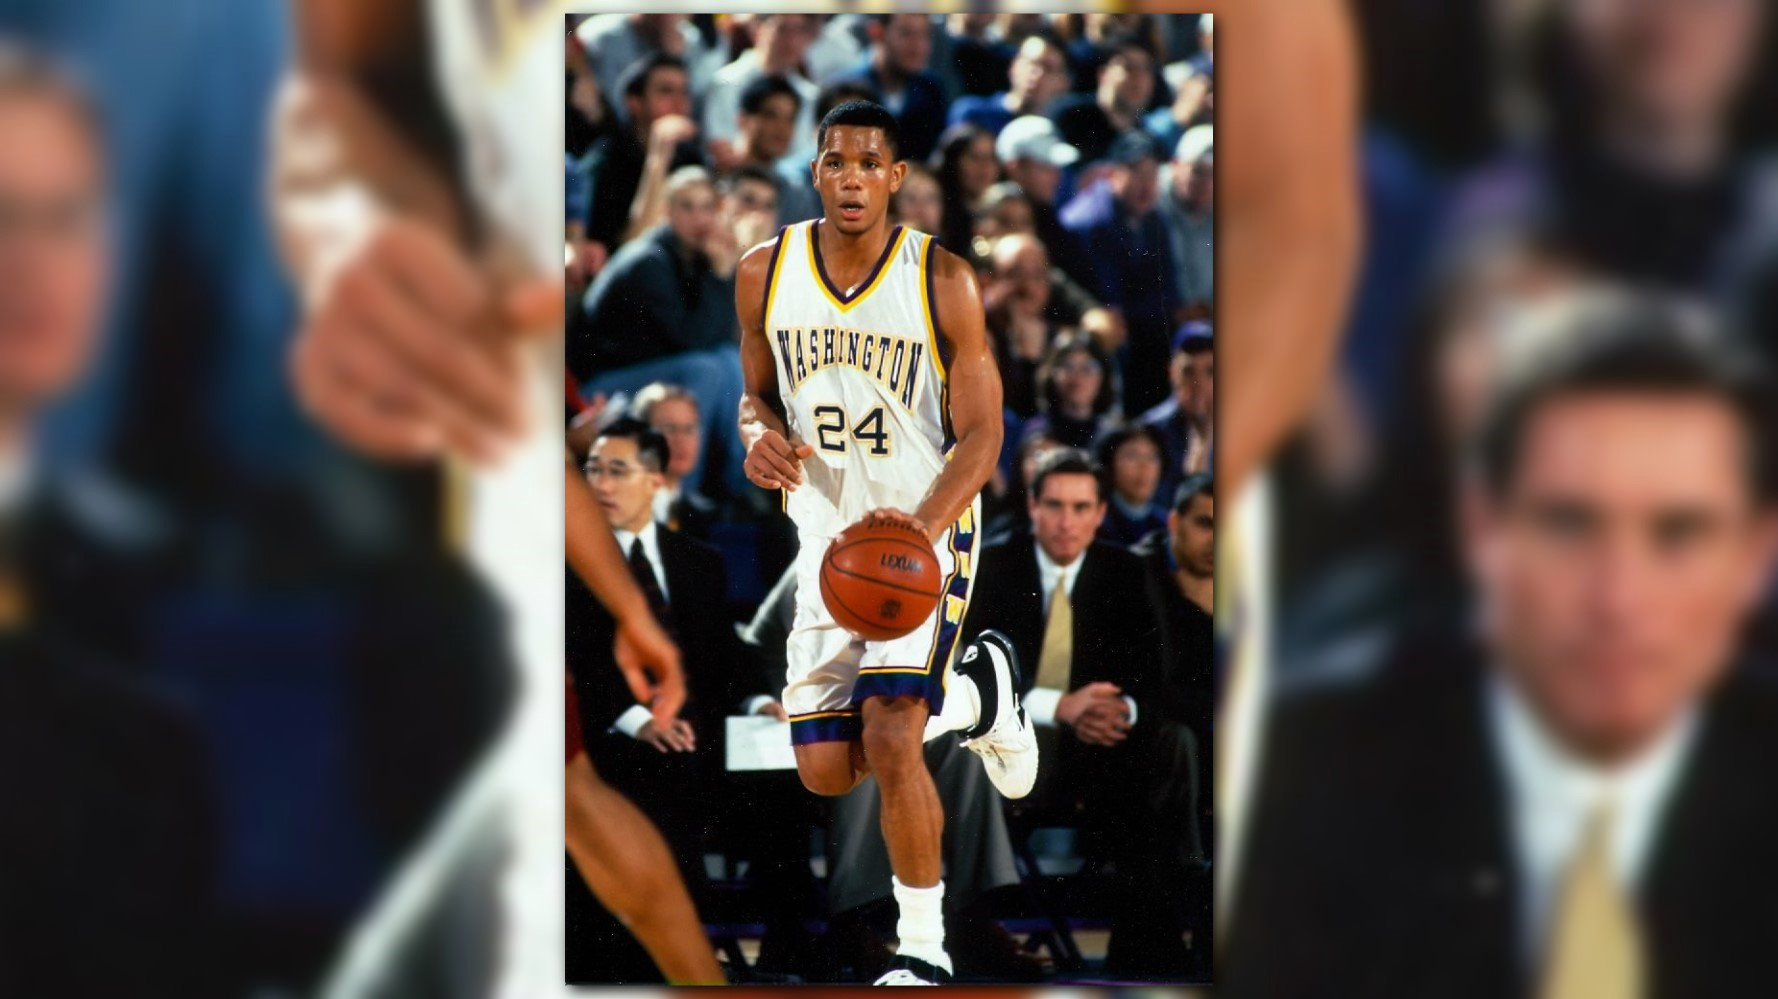 Former UW basketball star Donald Watts life with Chronic Fatigue